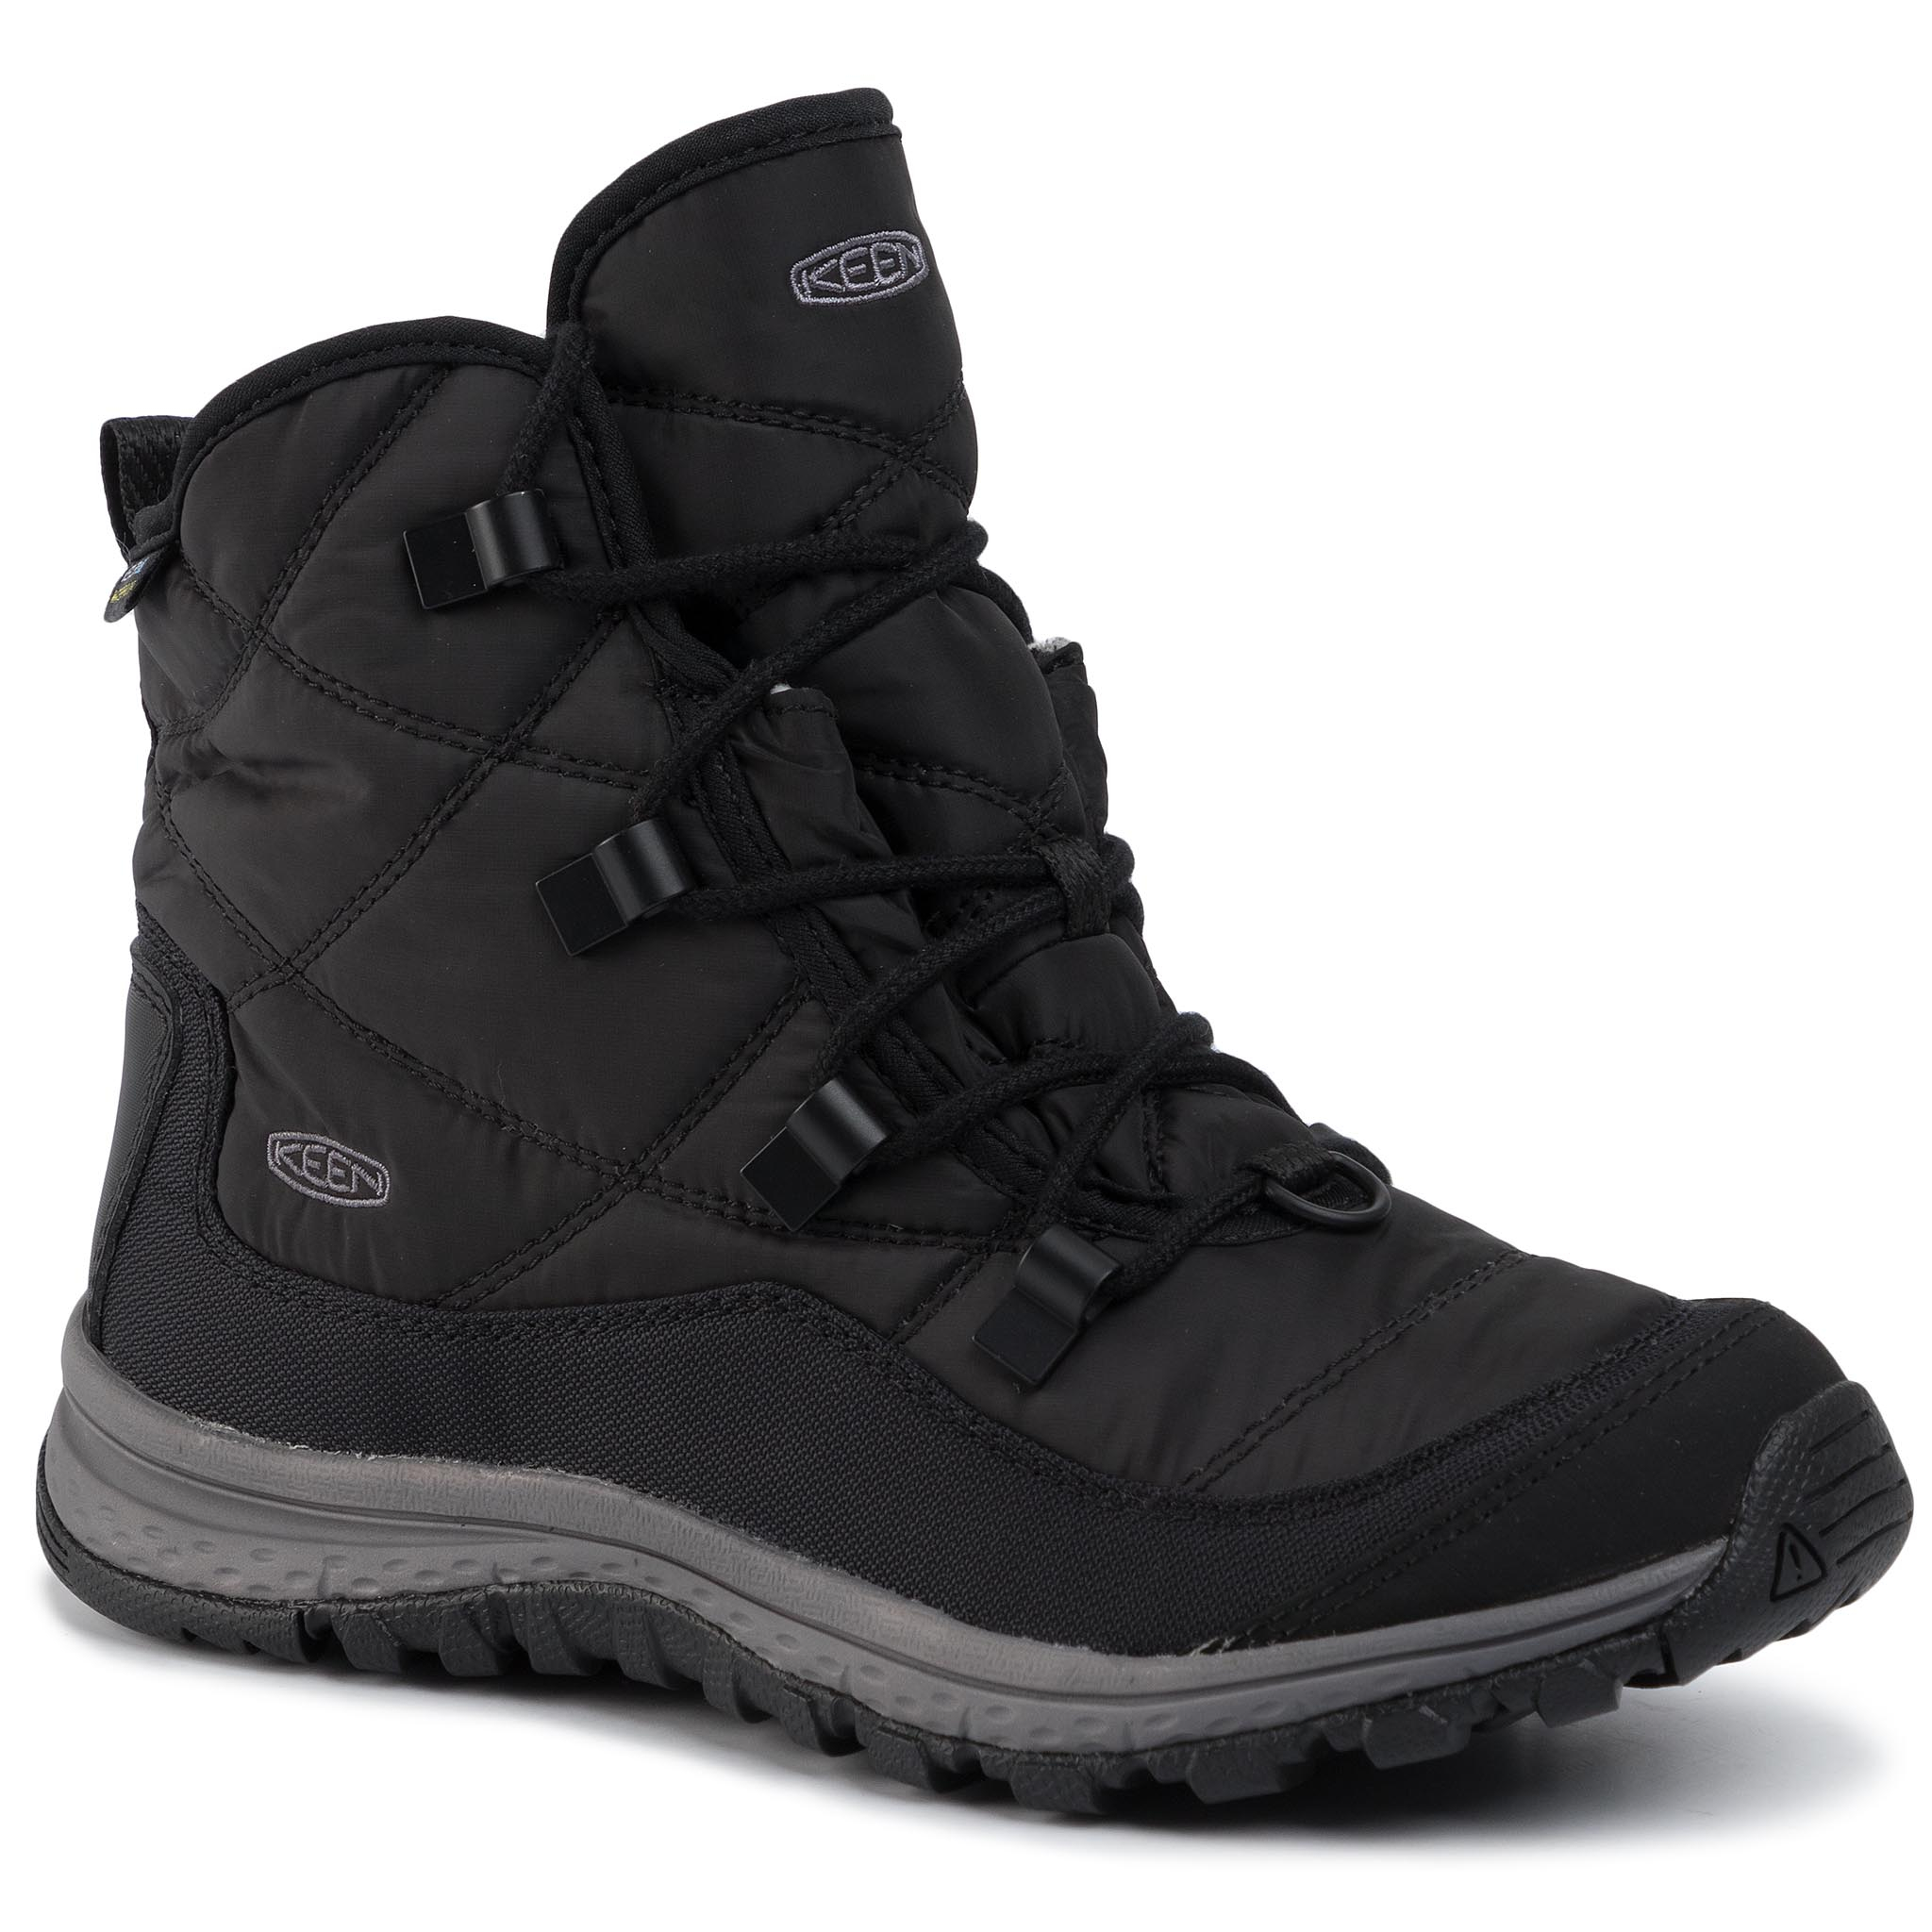 Trekkings Keen - Terradora Ankle Wp 1021735 Black/Steel Grey imagine epantofi.ro 2021